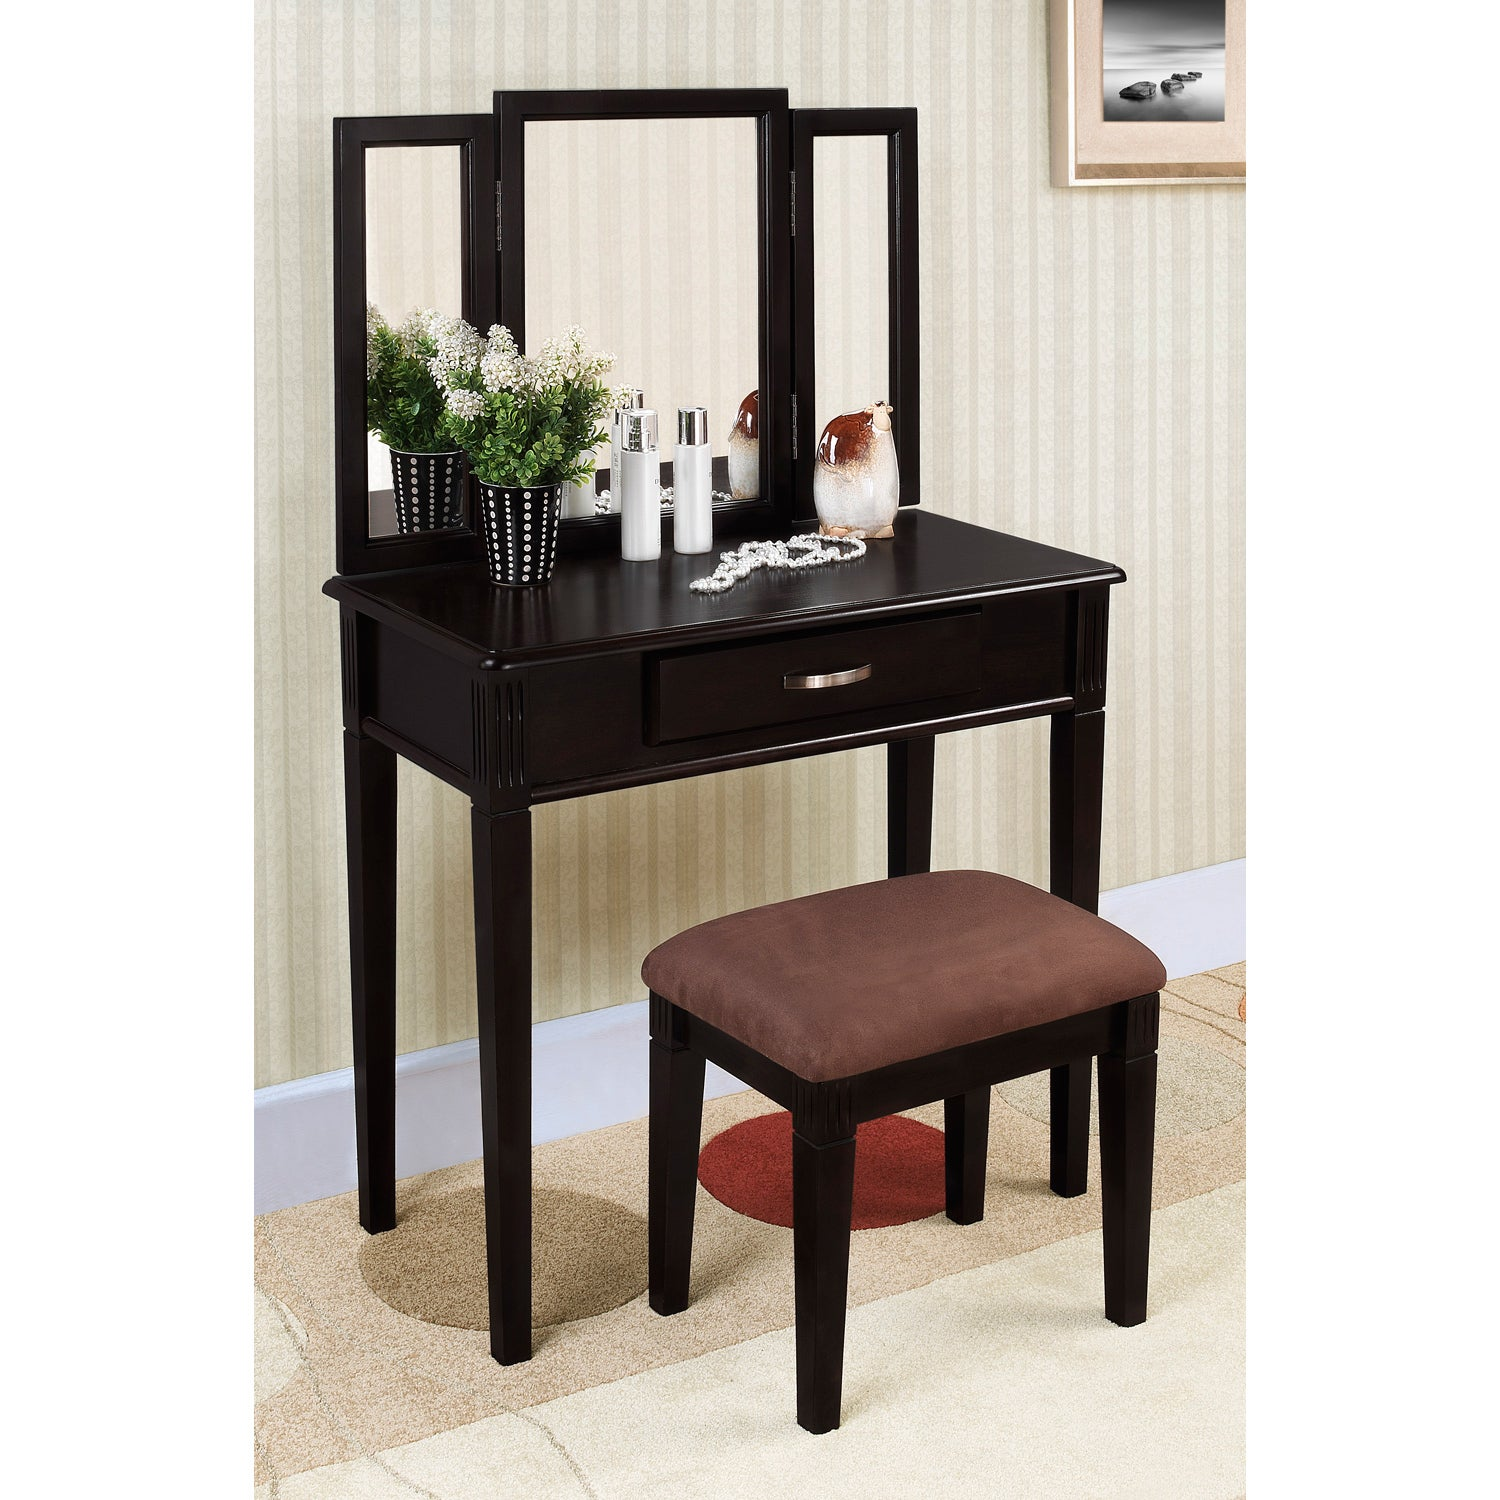 c vanity table victorian antique bedroom pine stand tables dressing mirrored